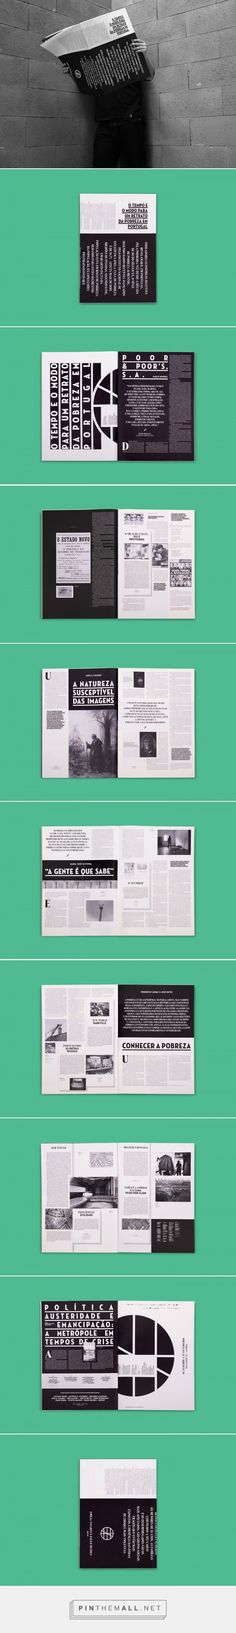 O Tempo e o Modo / Exhibition Journal on Behance... - a grouped images picture - Pin Them All